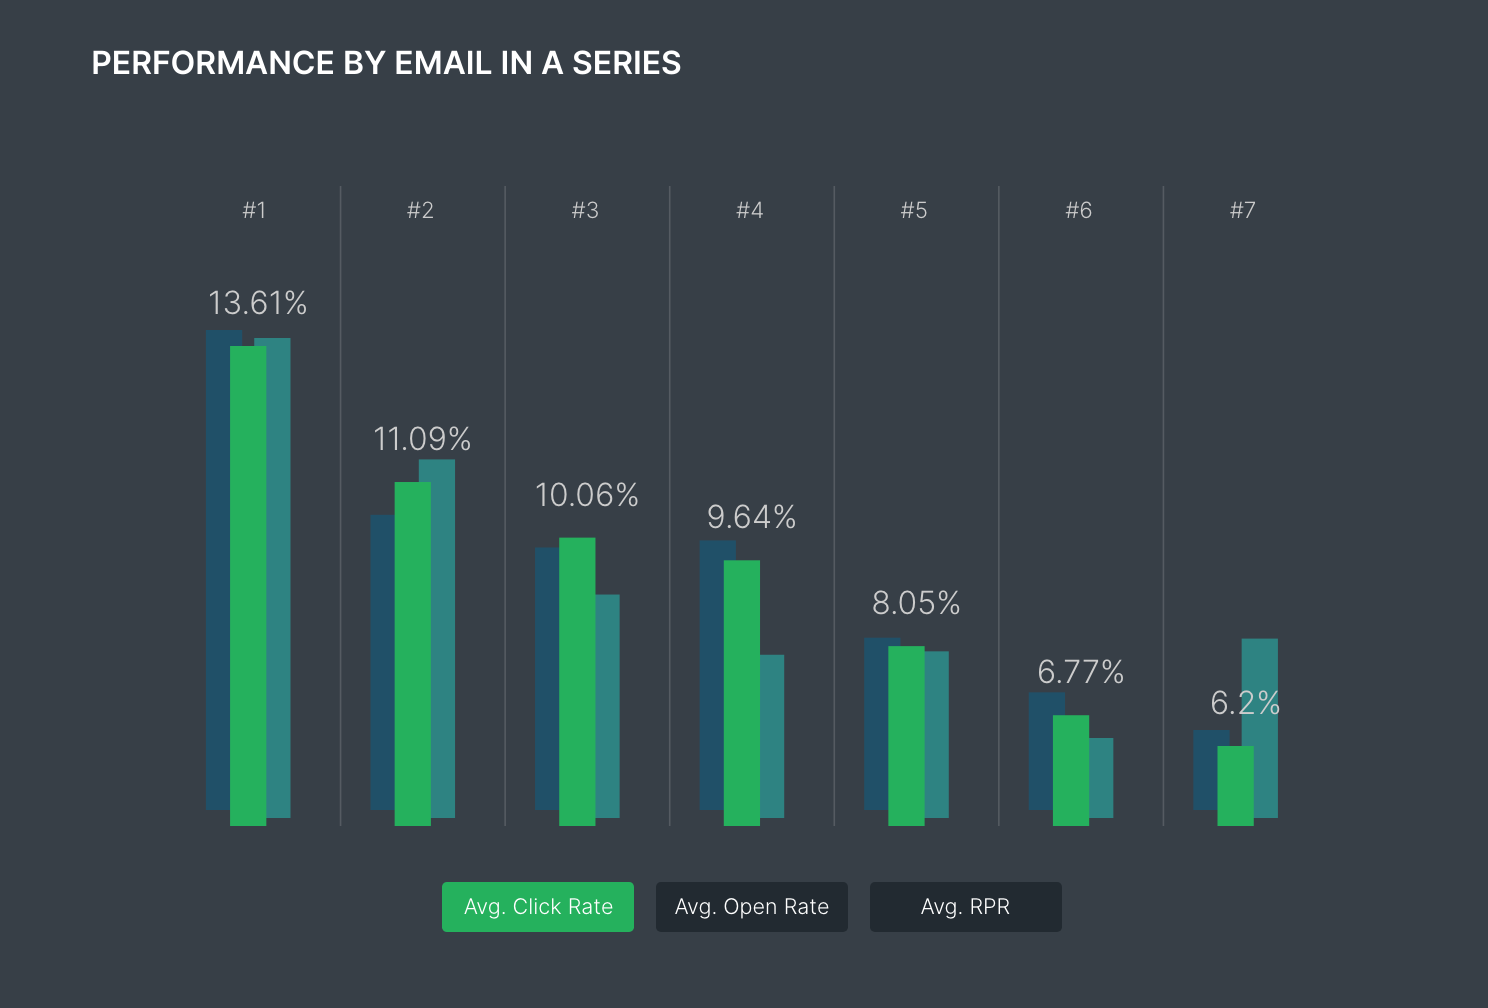 Performance by email